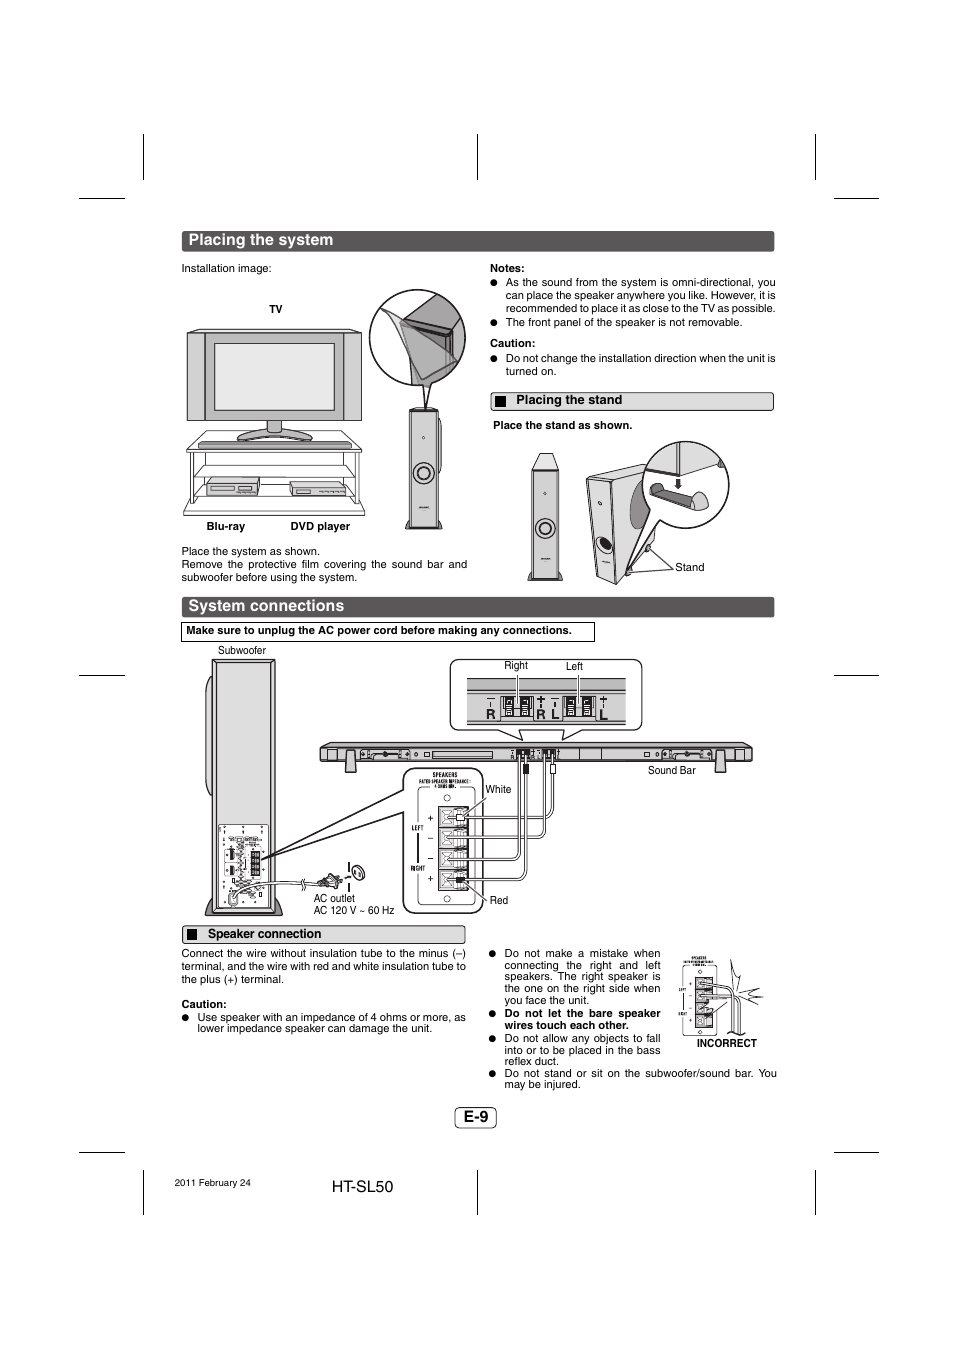 Placing the system, Placing the stand, System connections